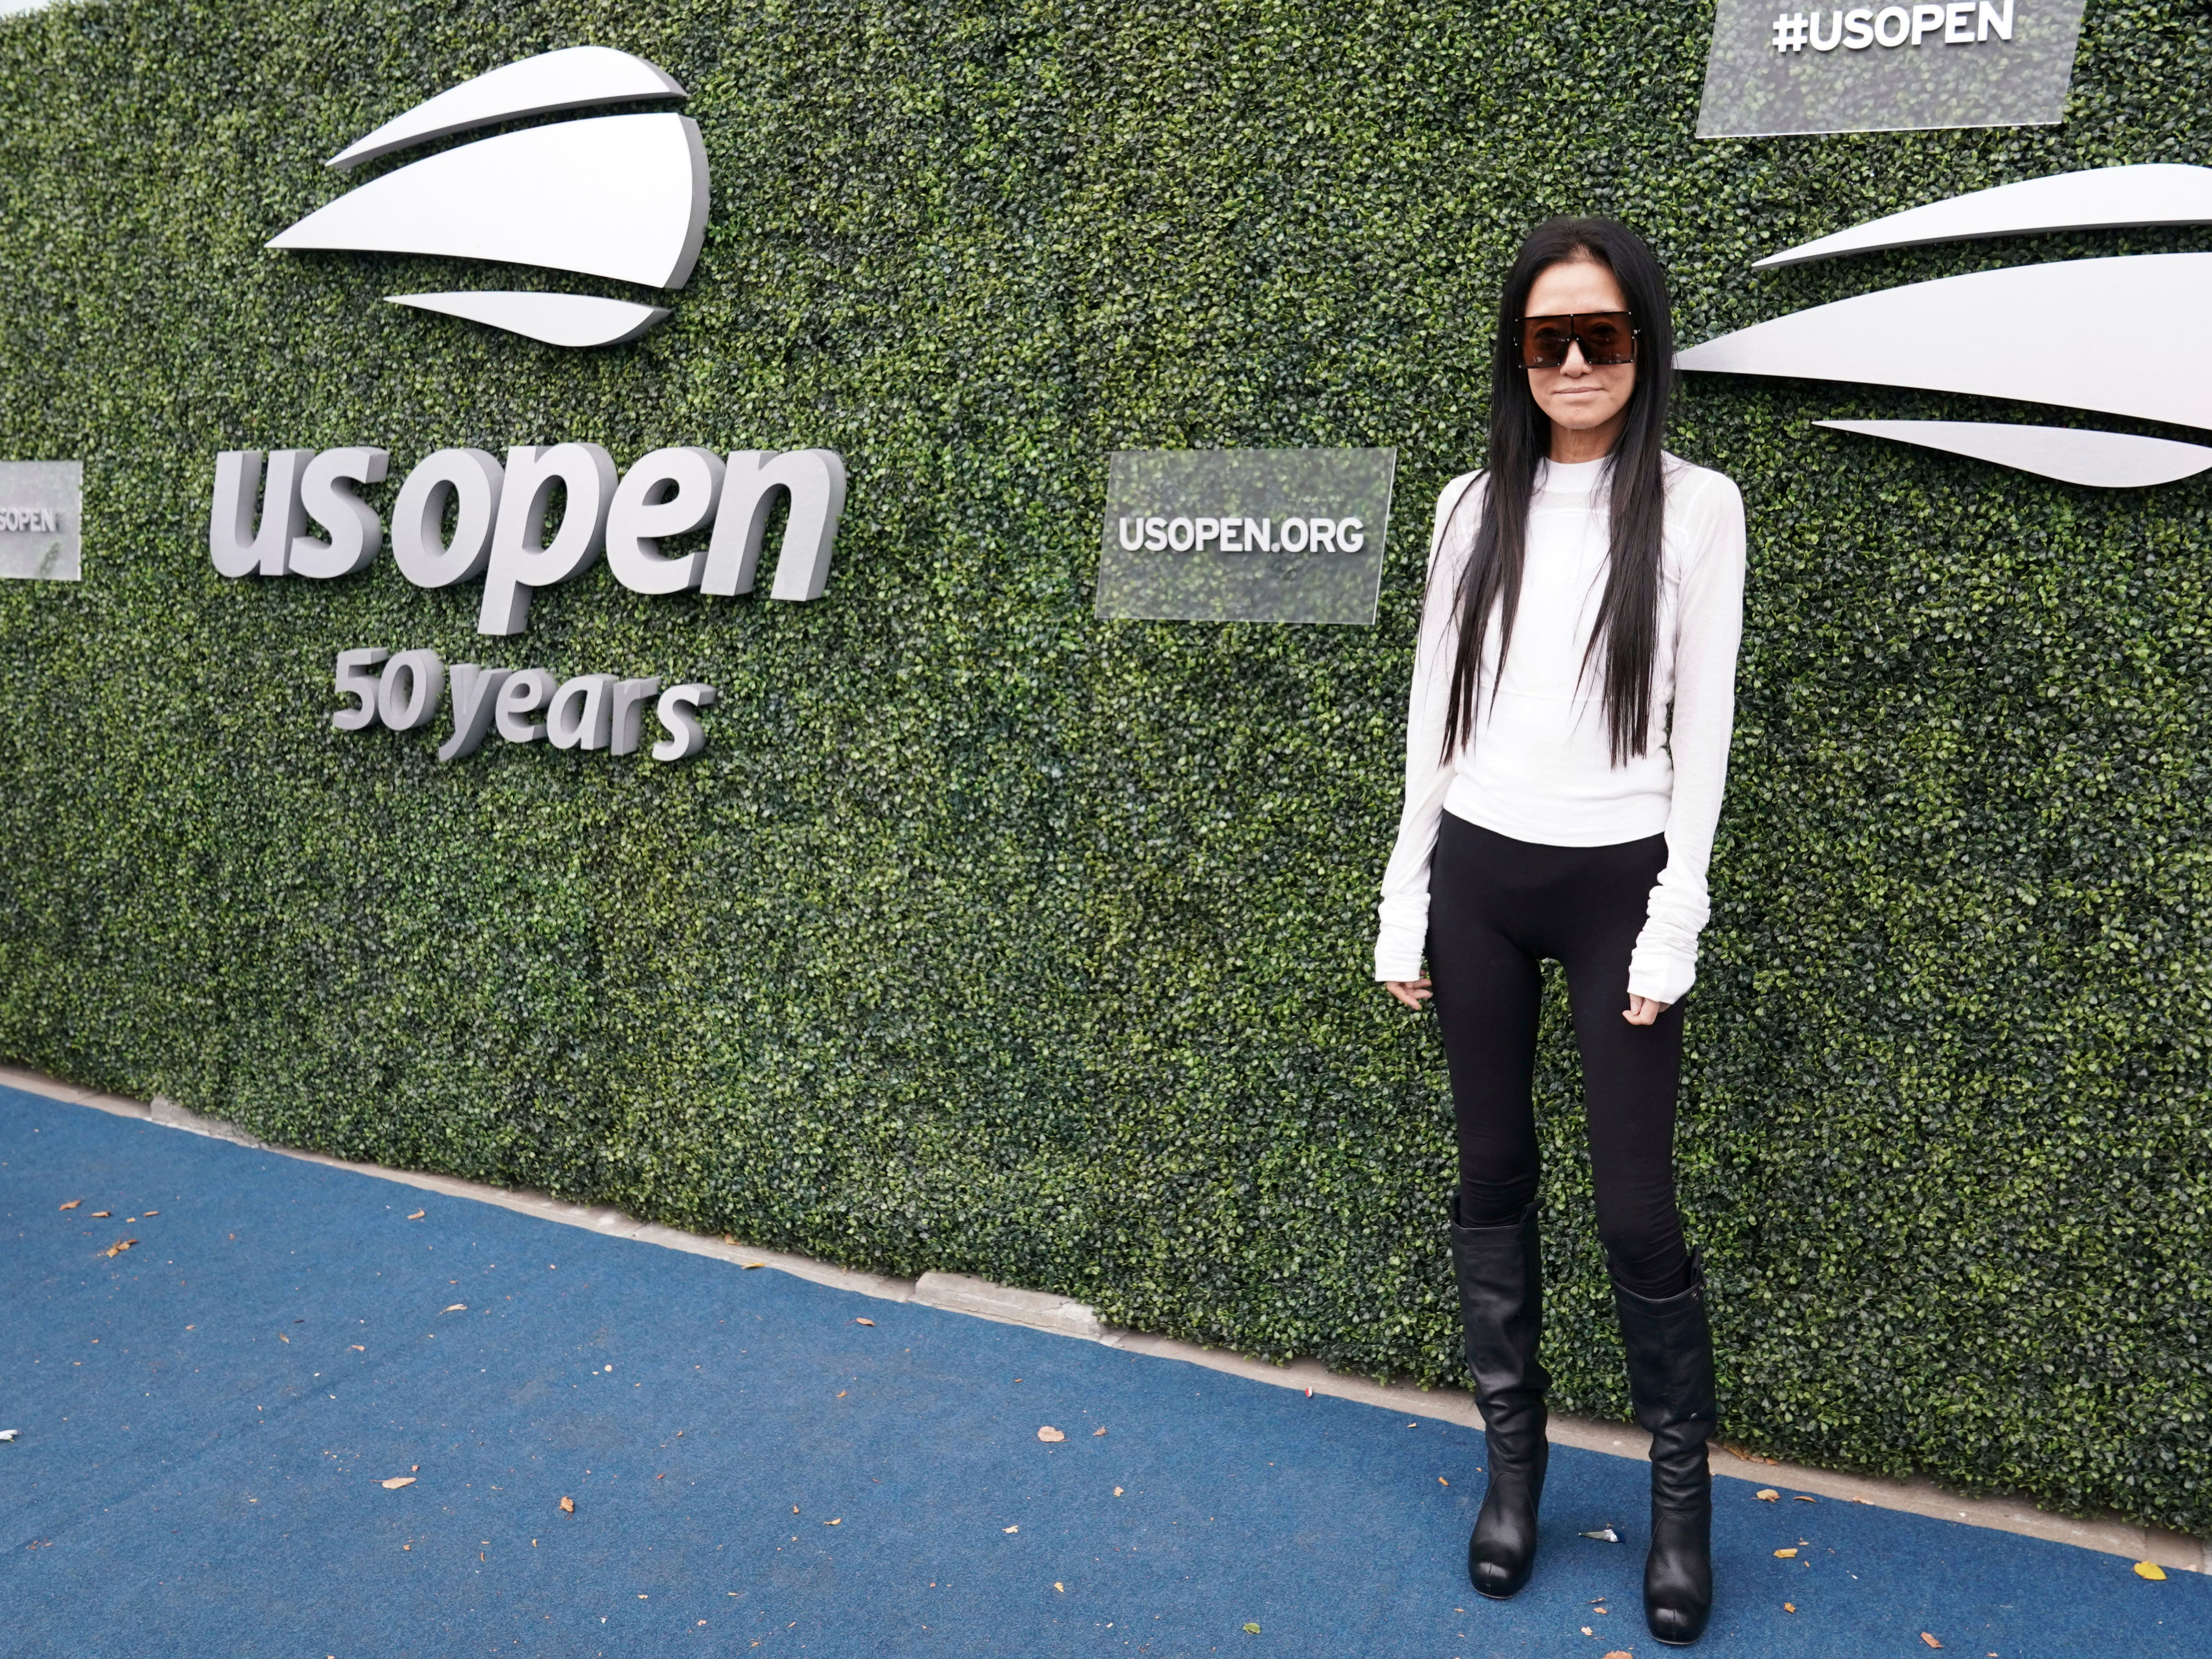 Fashion designer Vera Wang attends the women's final between Serena Williams and Naomi Osaka.